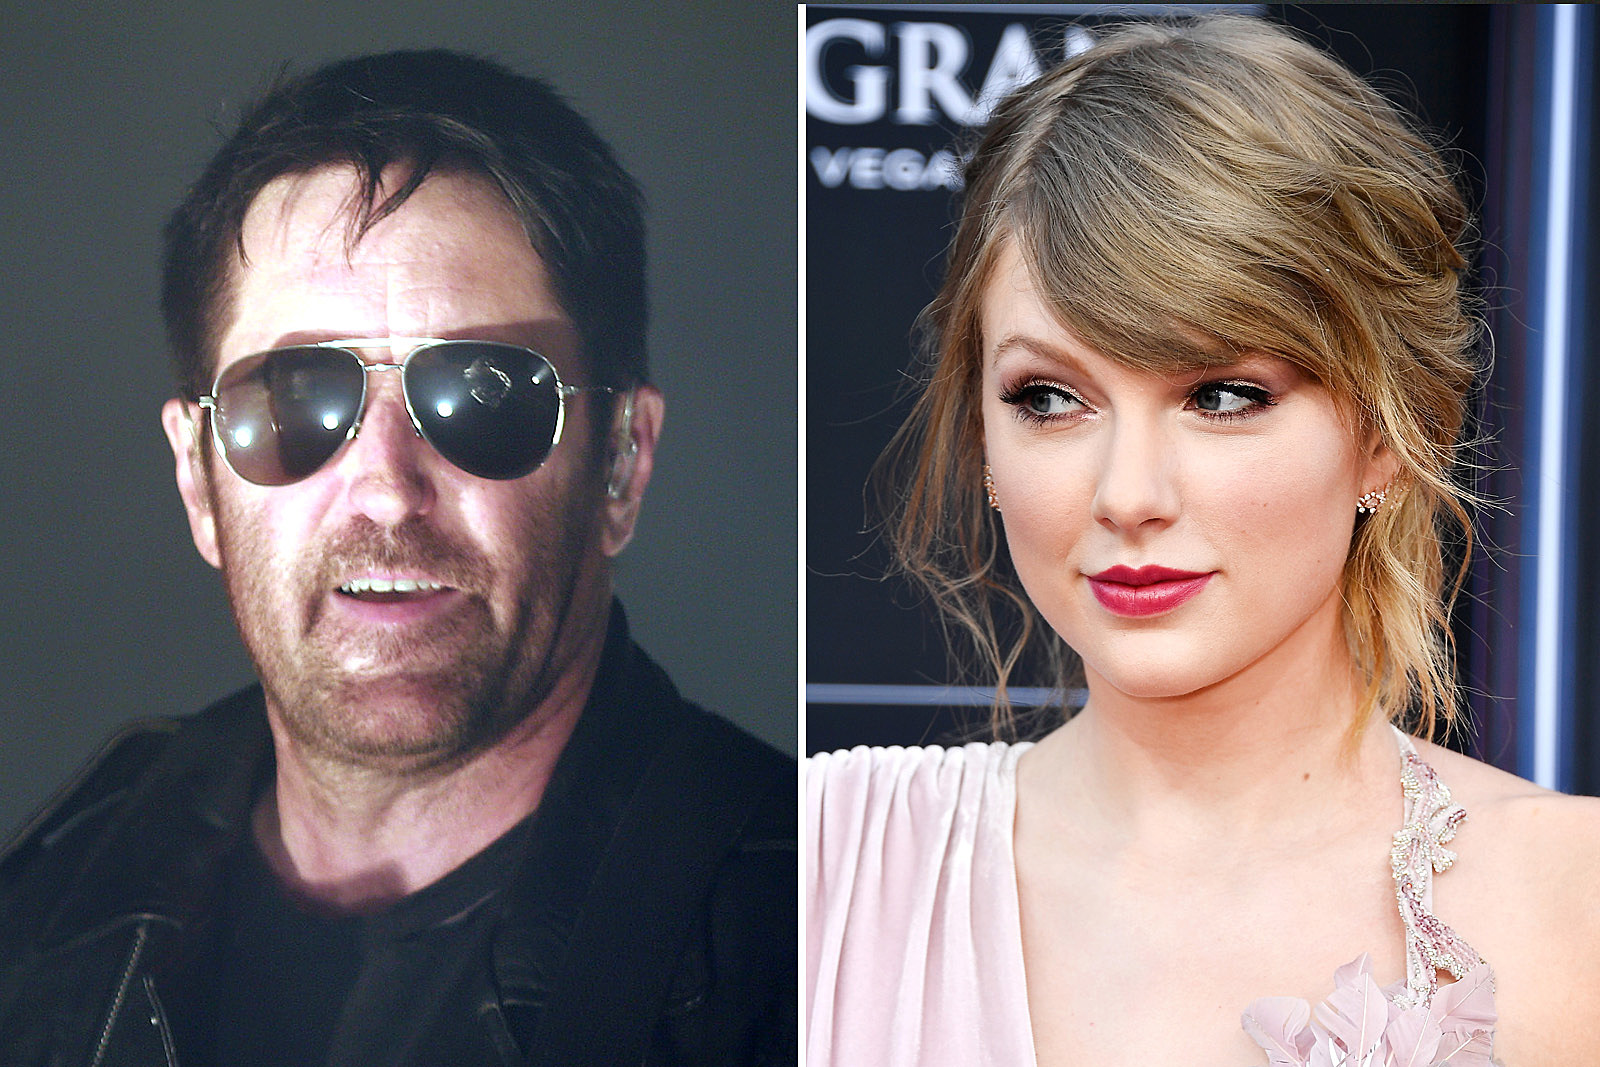 Trent Reznor Slams 'Taylor Swifts' Who Keep Politics Out of Their Music